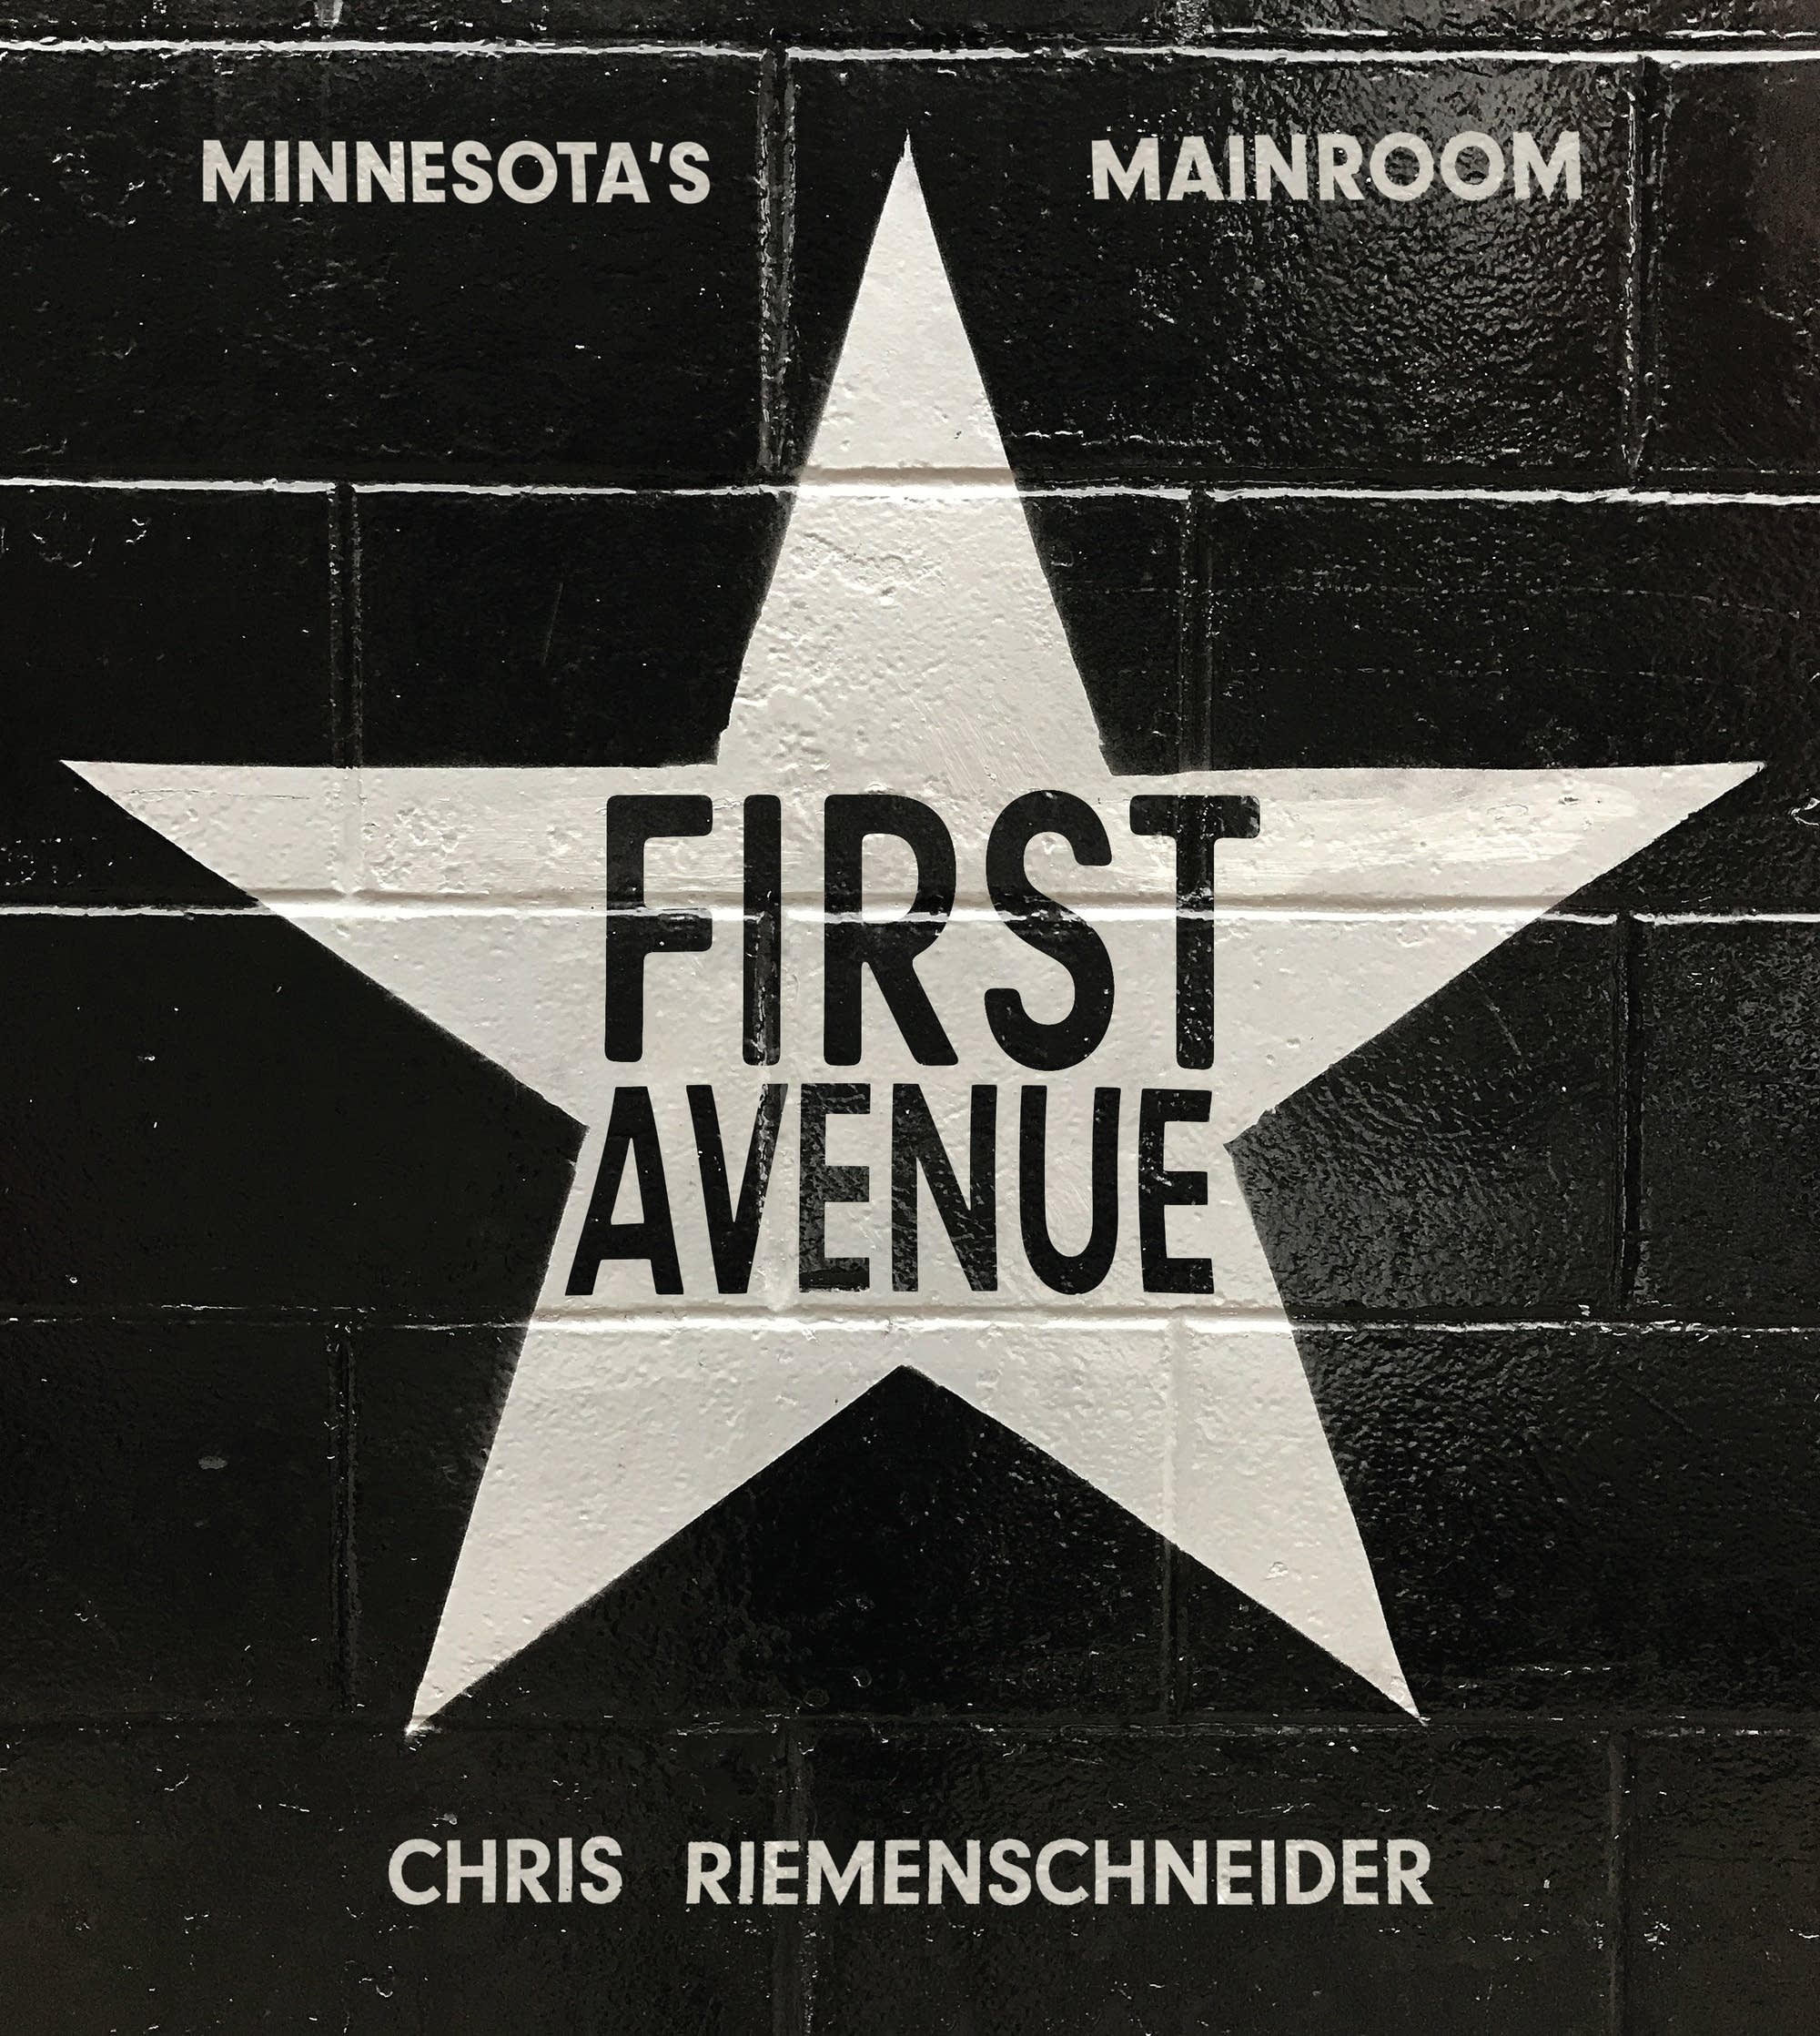 'First Avenue' by Chris Riemenschneider